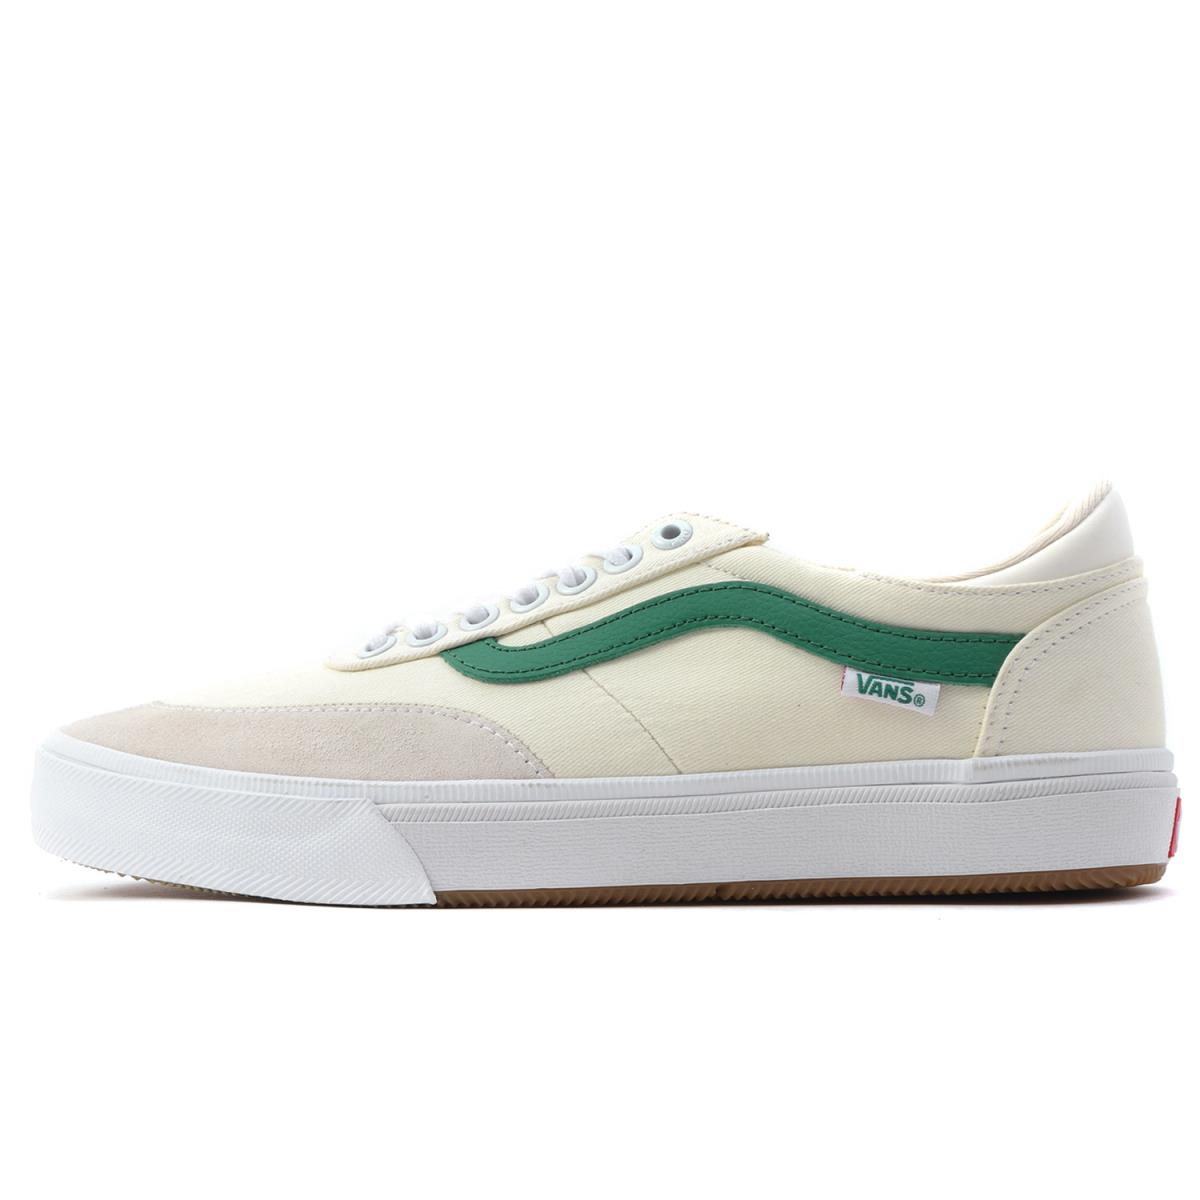 VANS (vans) GILBERT CROCKETT 2 PRO CENTER COURT classical music white X  evergreen US8.5(26.5cm) 40653da01